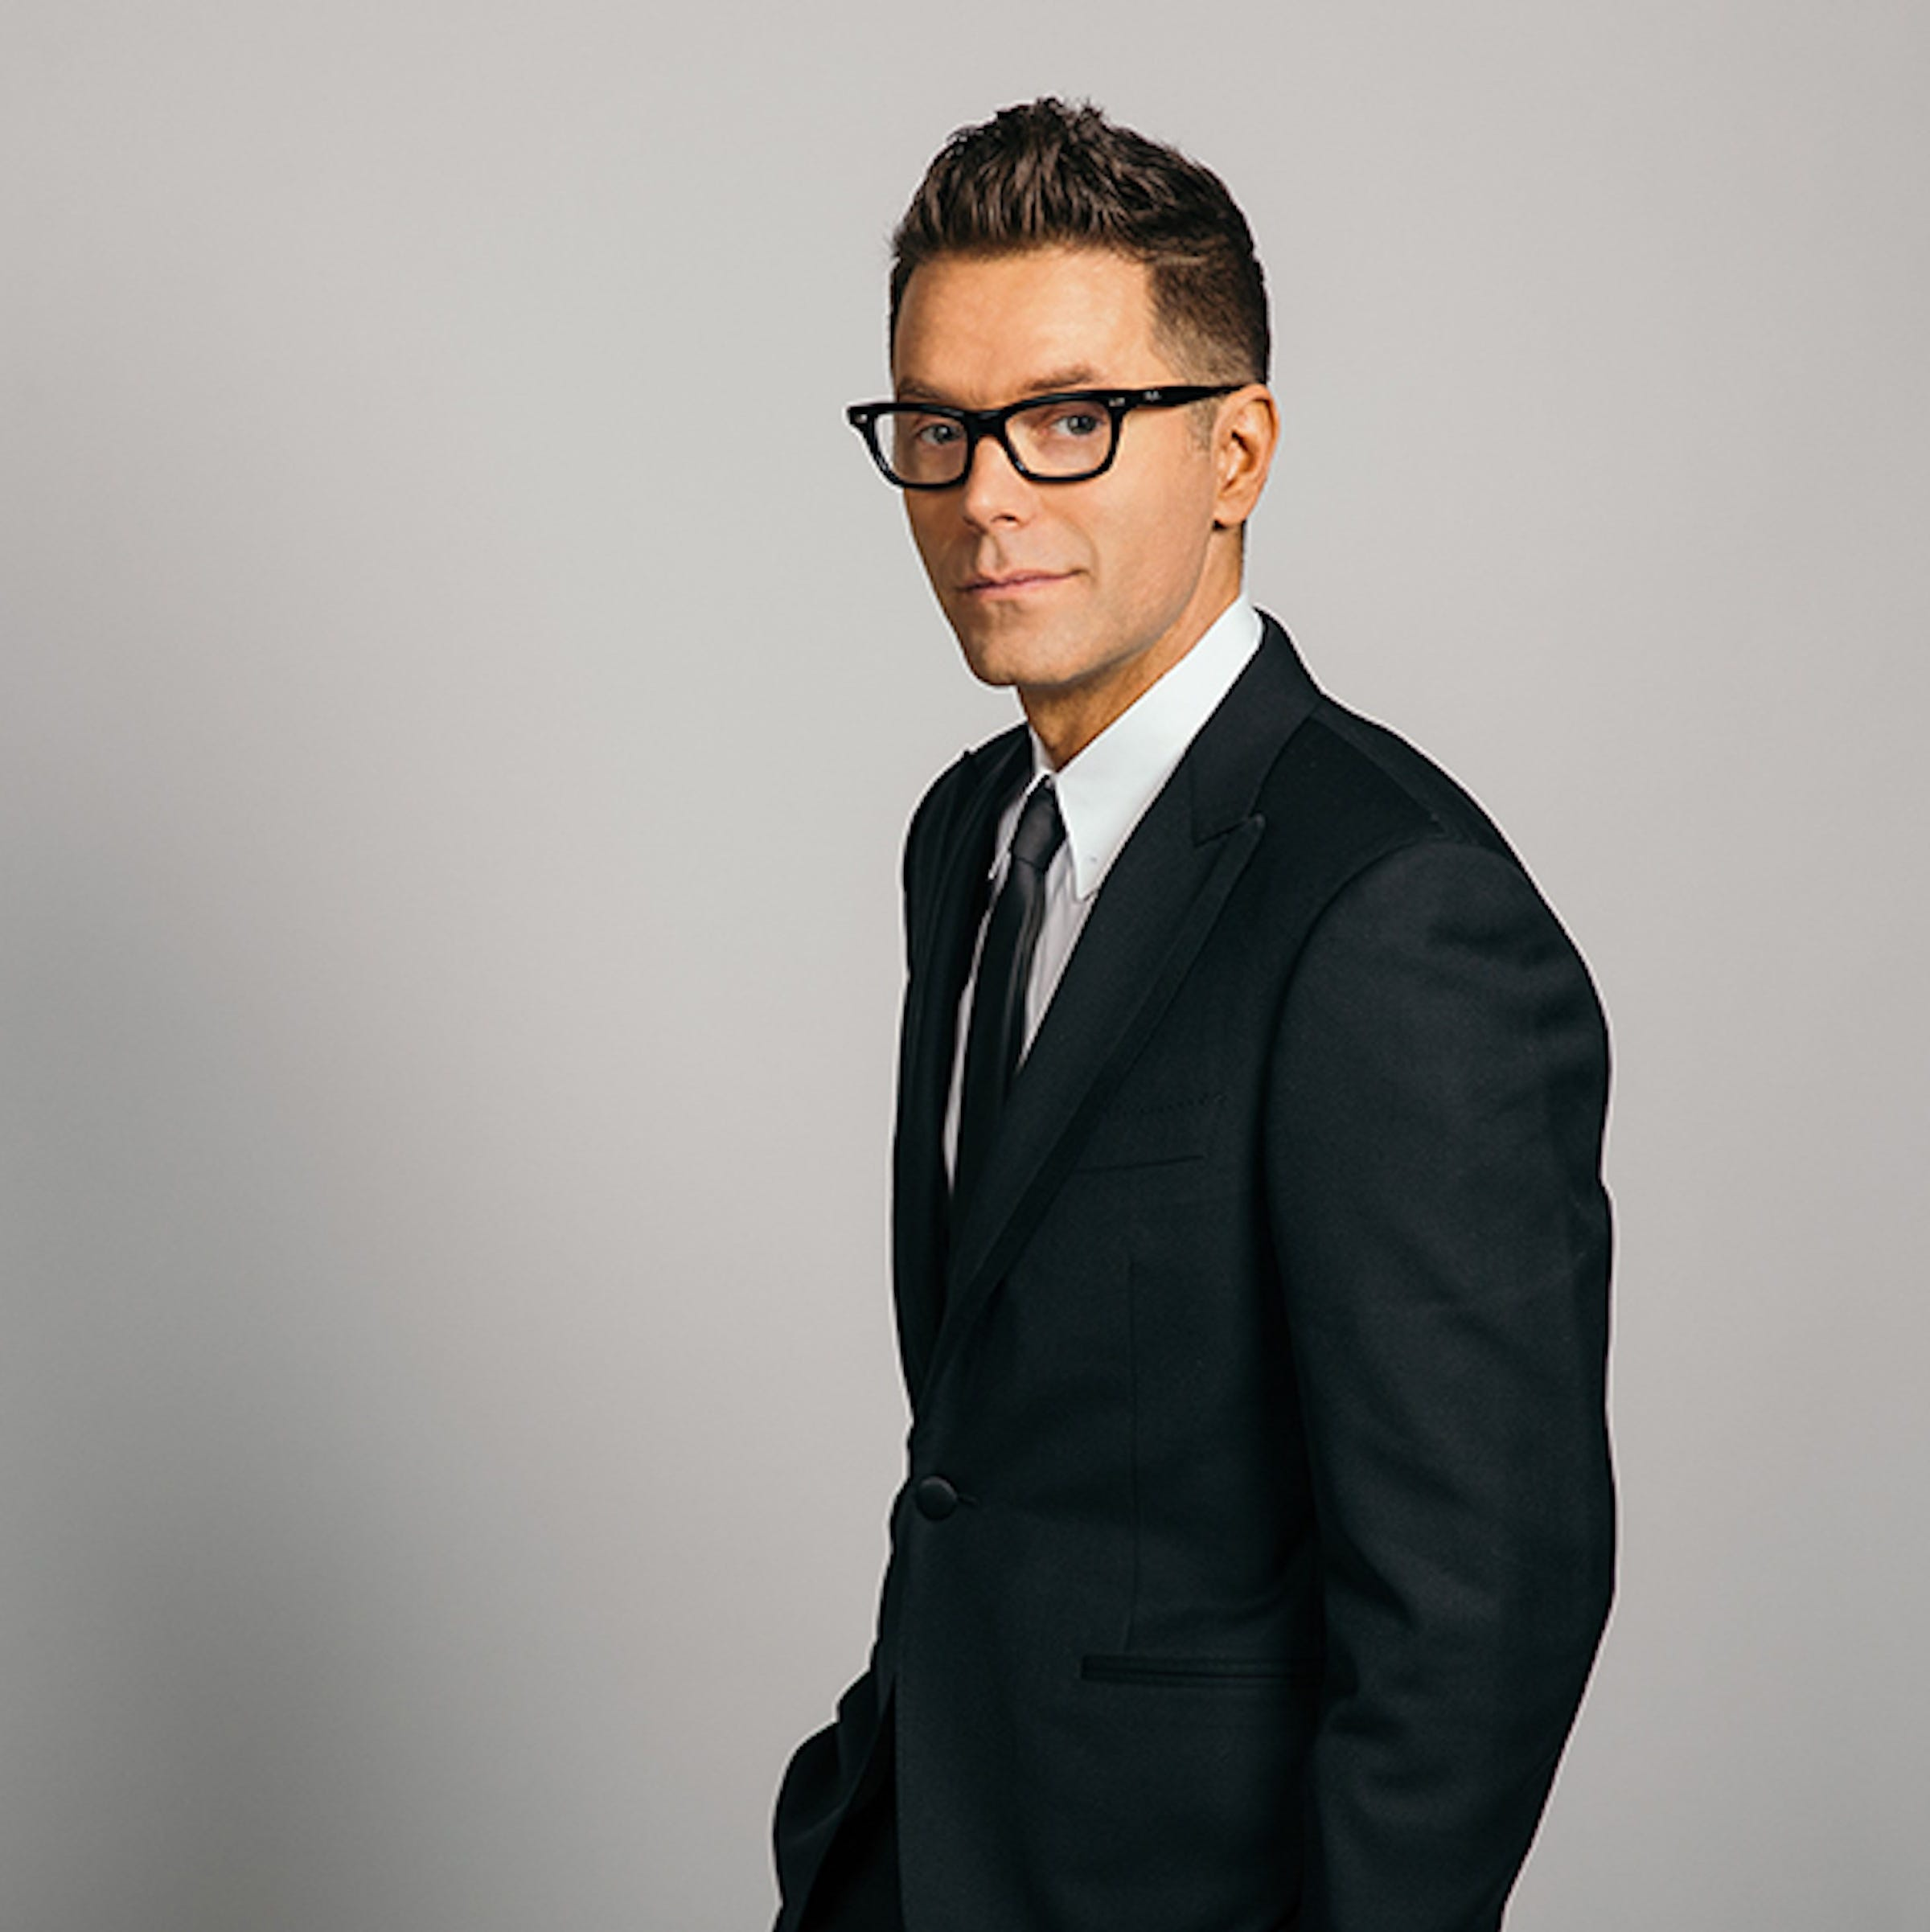 On-air personality Bobby Bones to headline MSU Public Affairs Conference